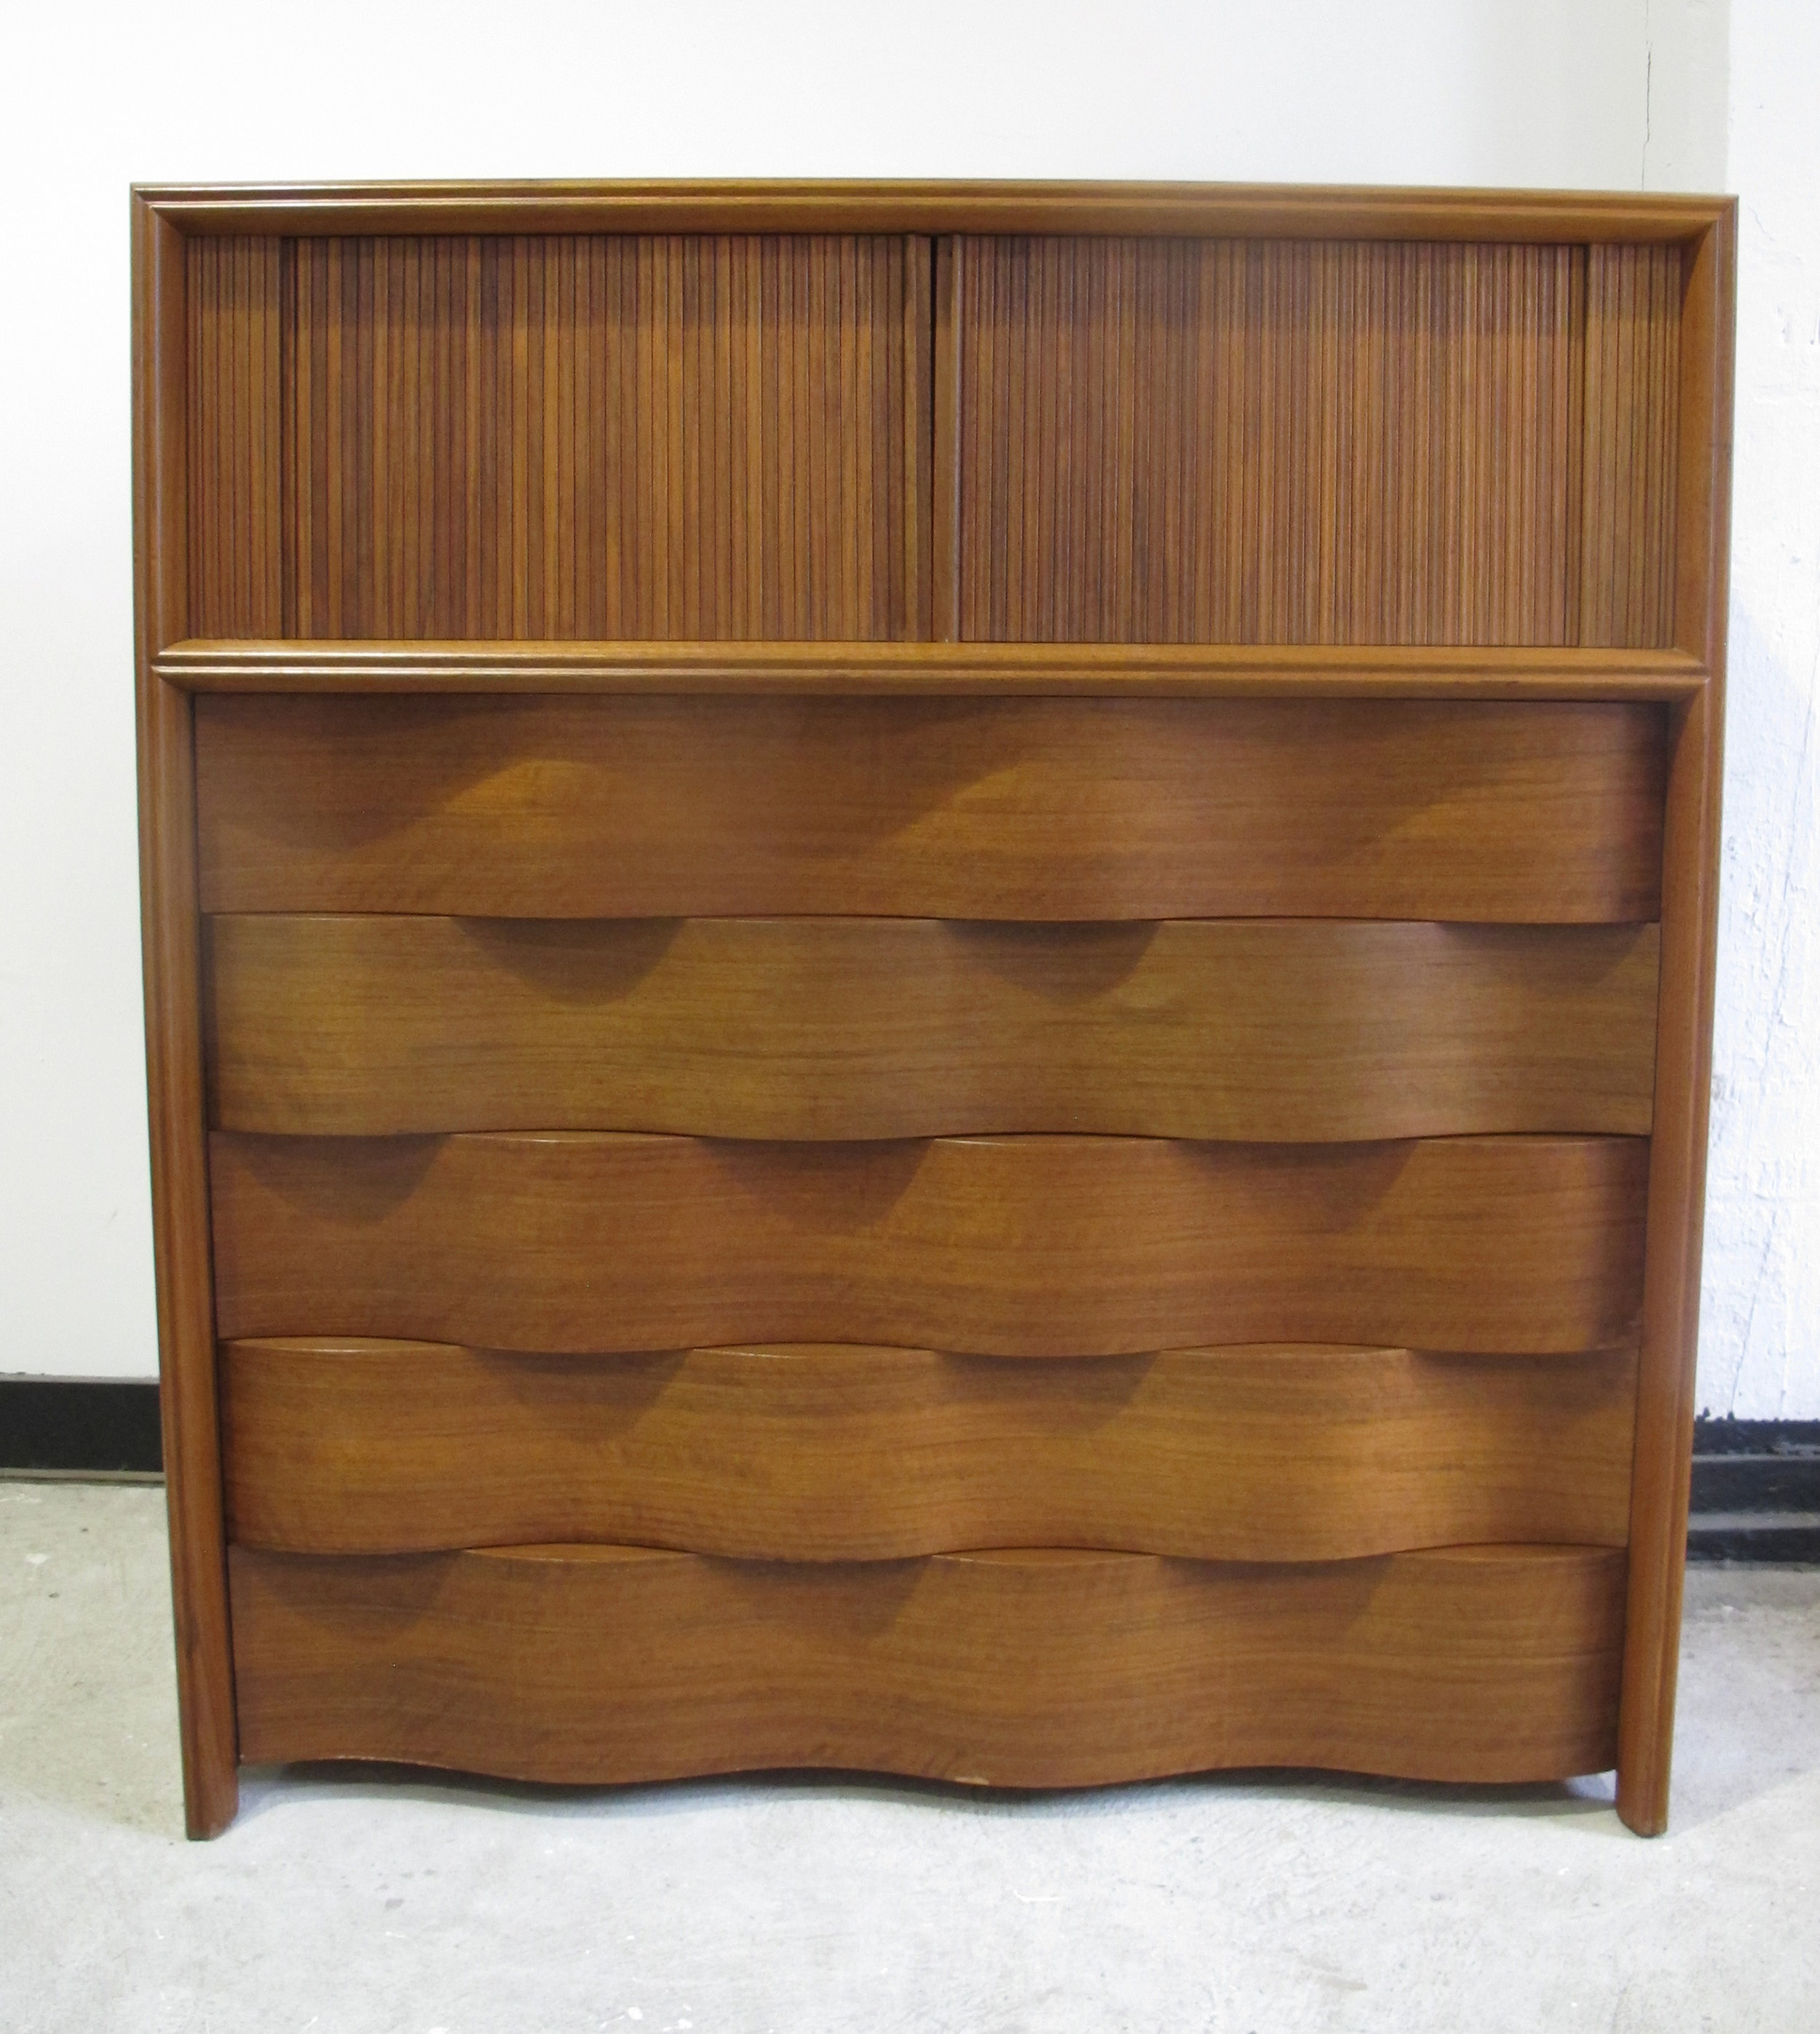 MID CENTURY WALNUT WAVE DRESSER BY EDMUND SPENCE